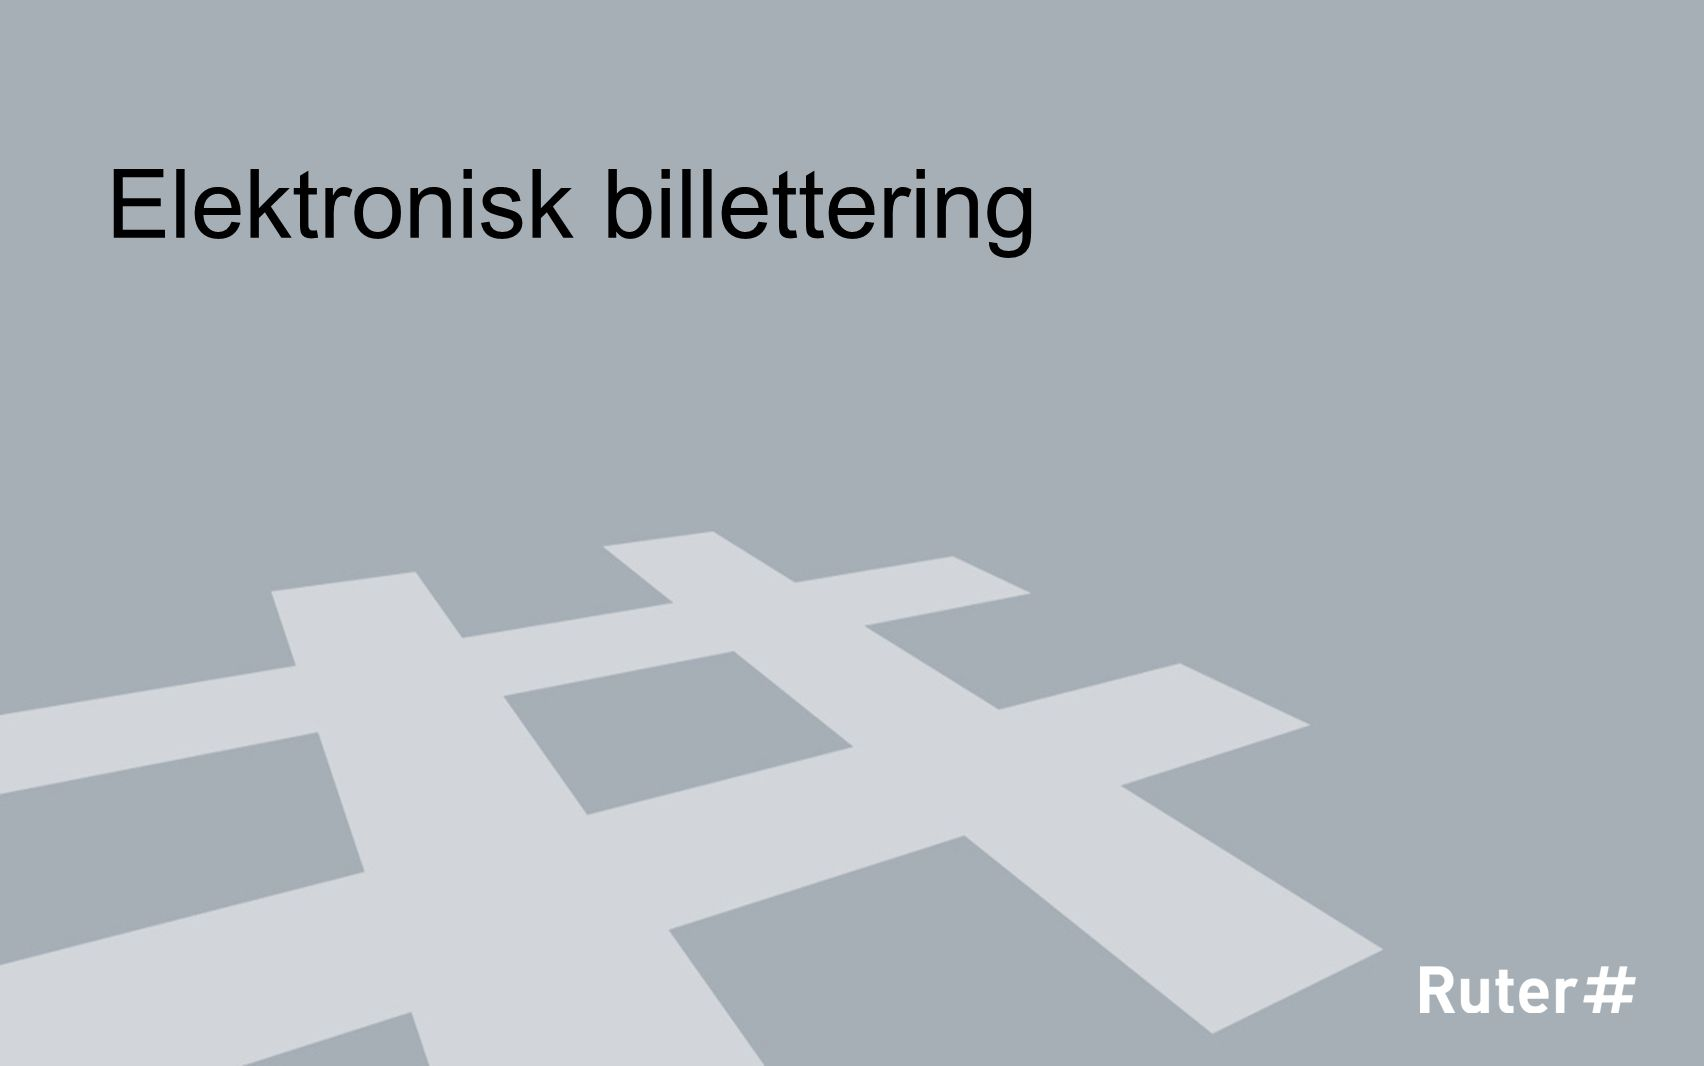 Elektronisk billettering